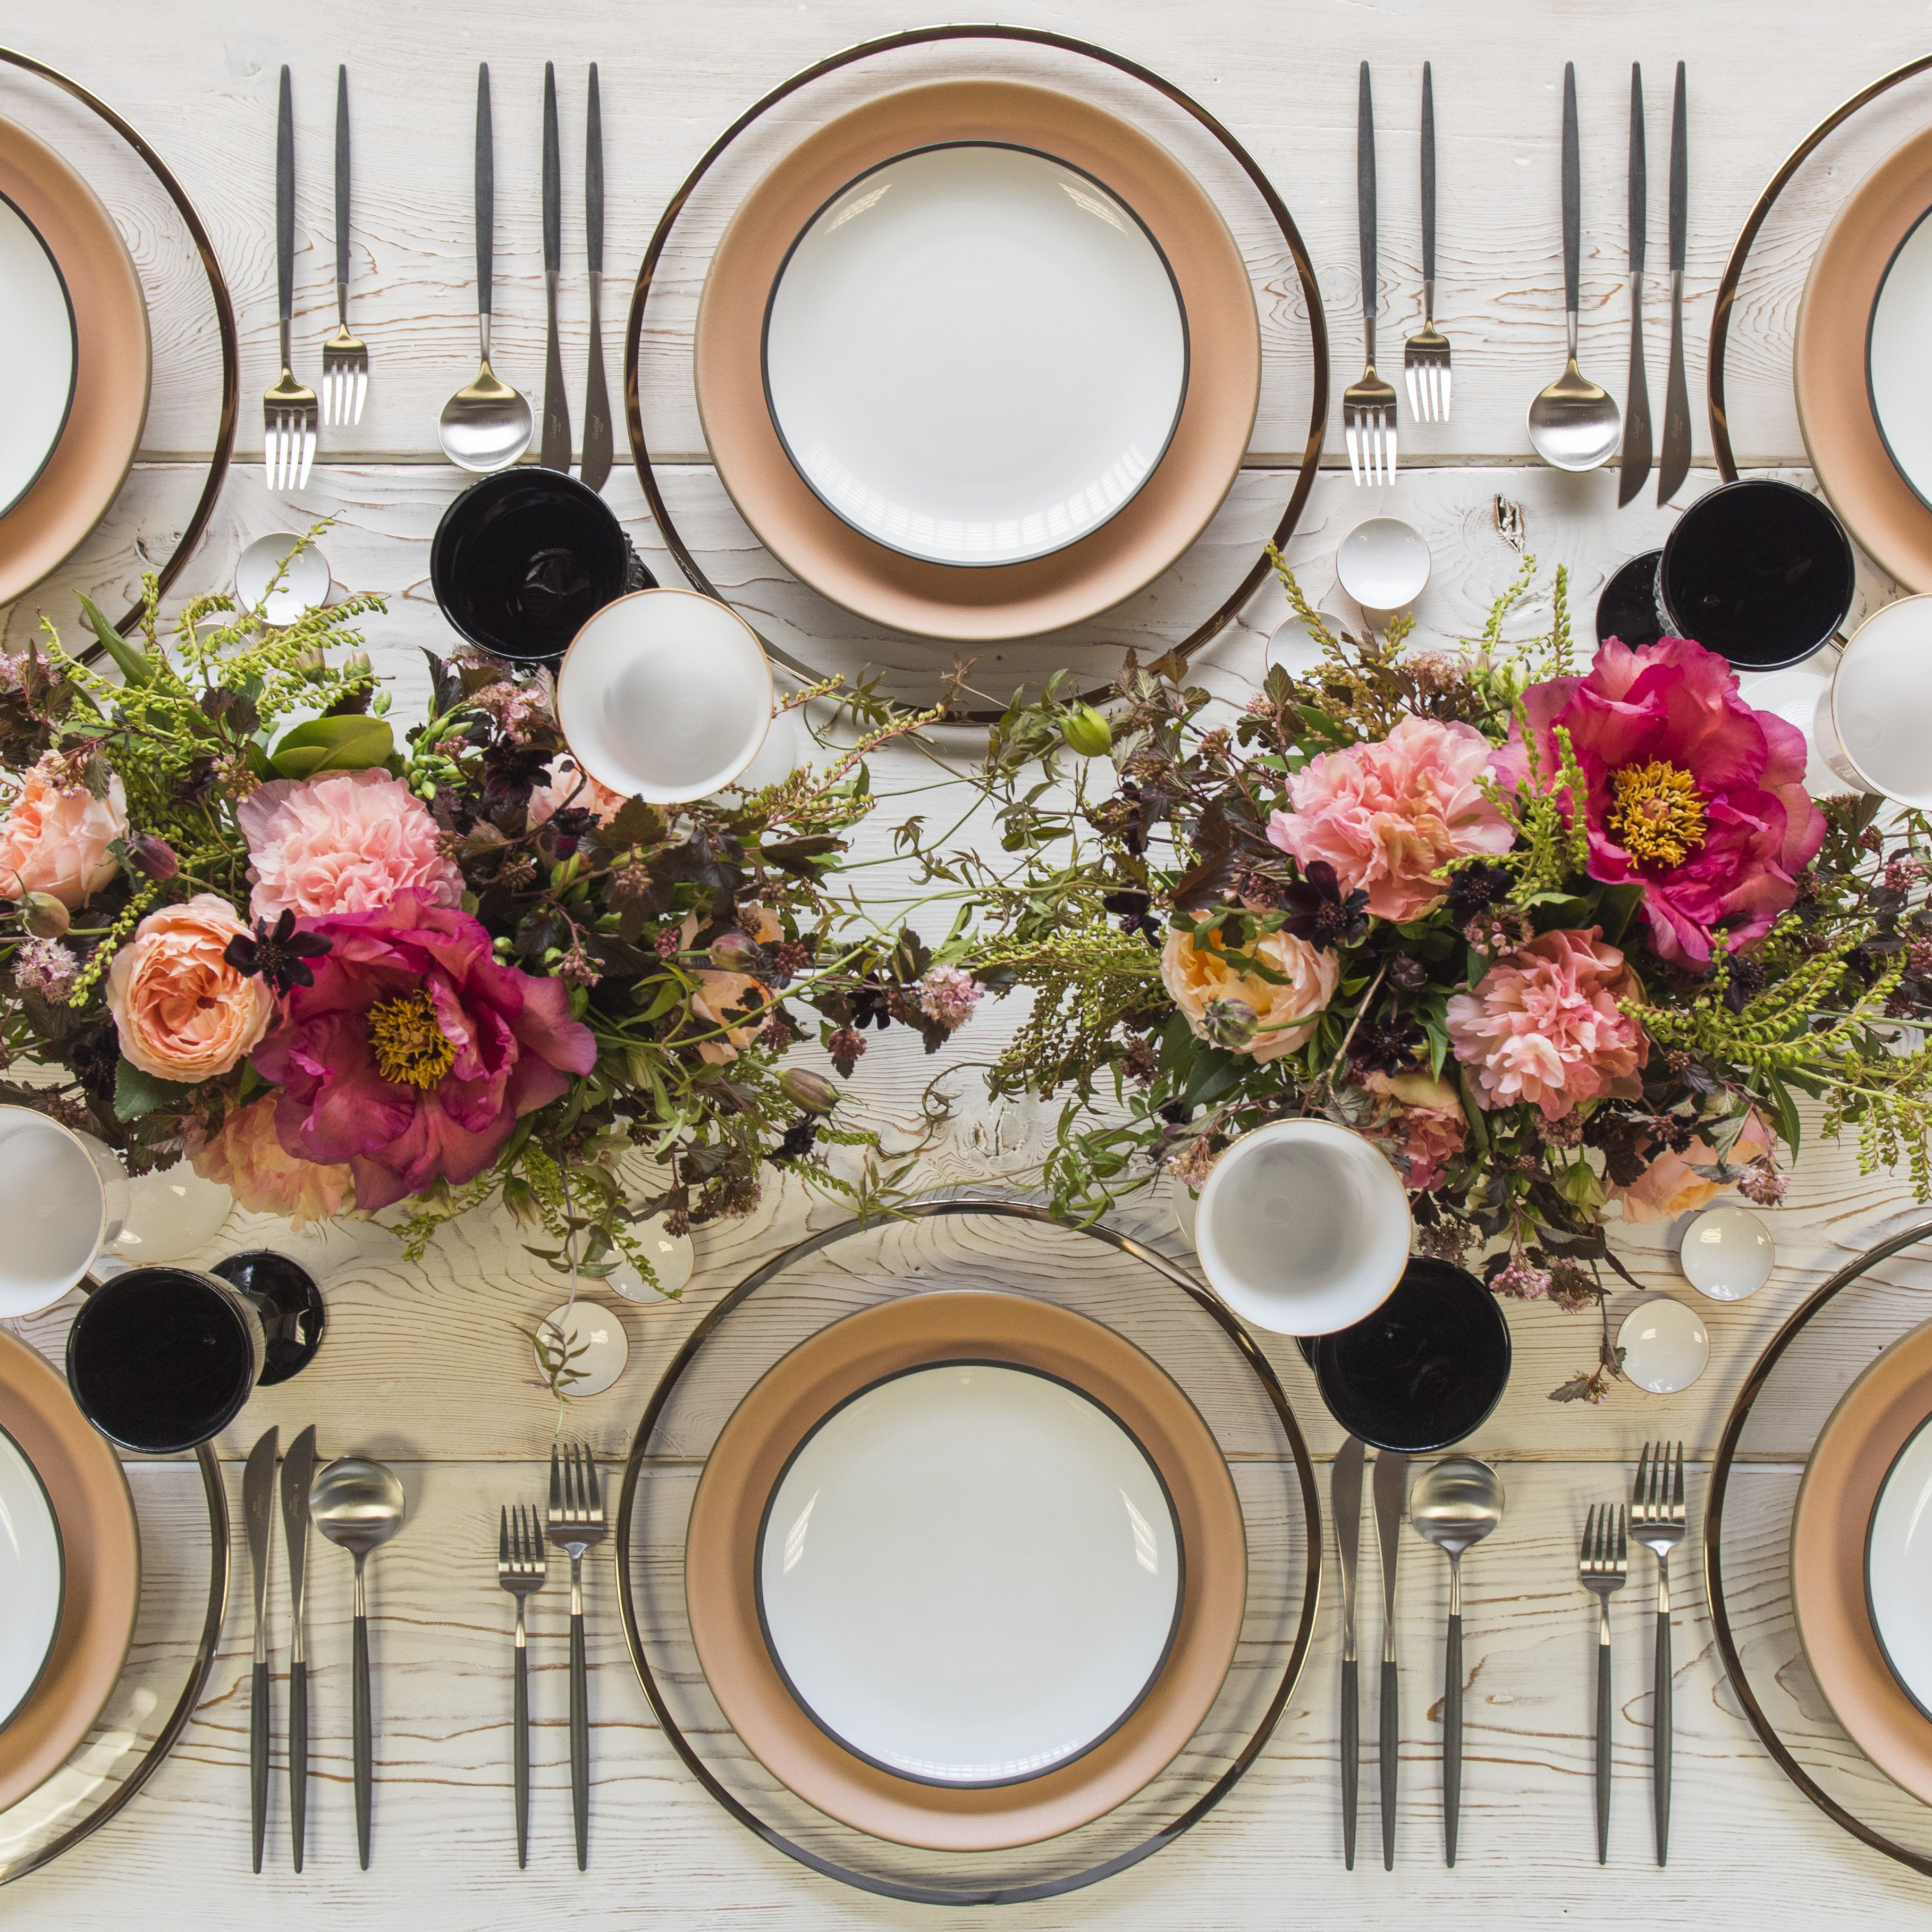 RENT Halo Glass Chargers in Platinum + Heath Ceramic Dinnerware in Sunrise + Maison Collection & RENT: Halo Glass Chargers in Platinum + Heath Ceramic Dinnerware in ...